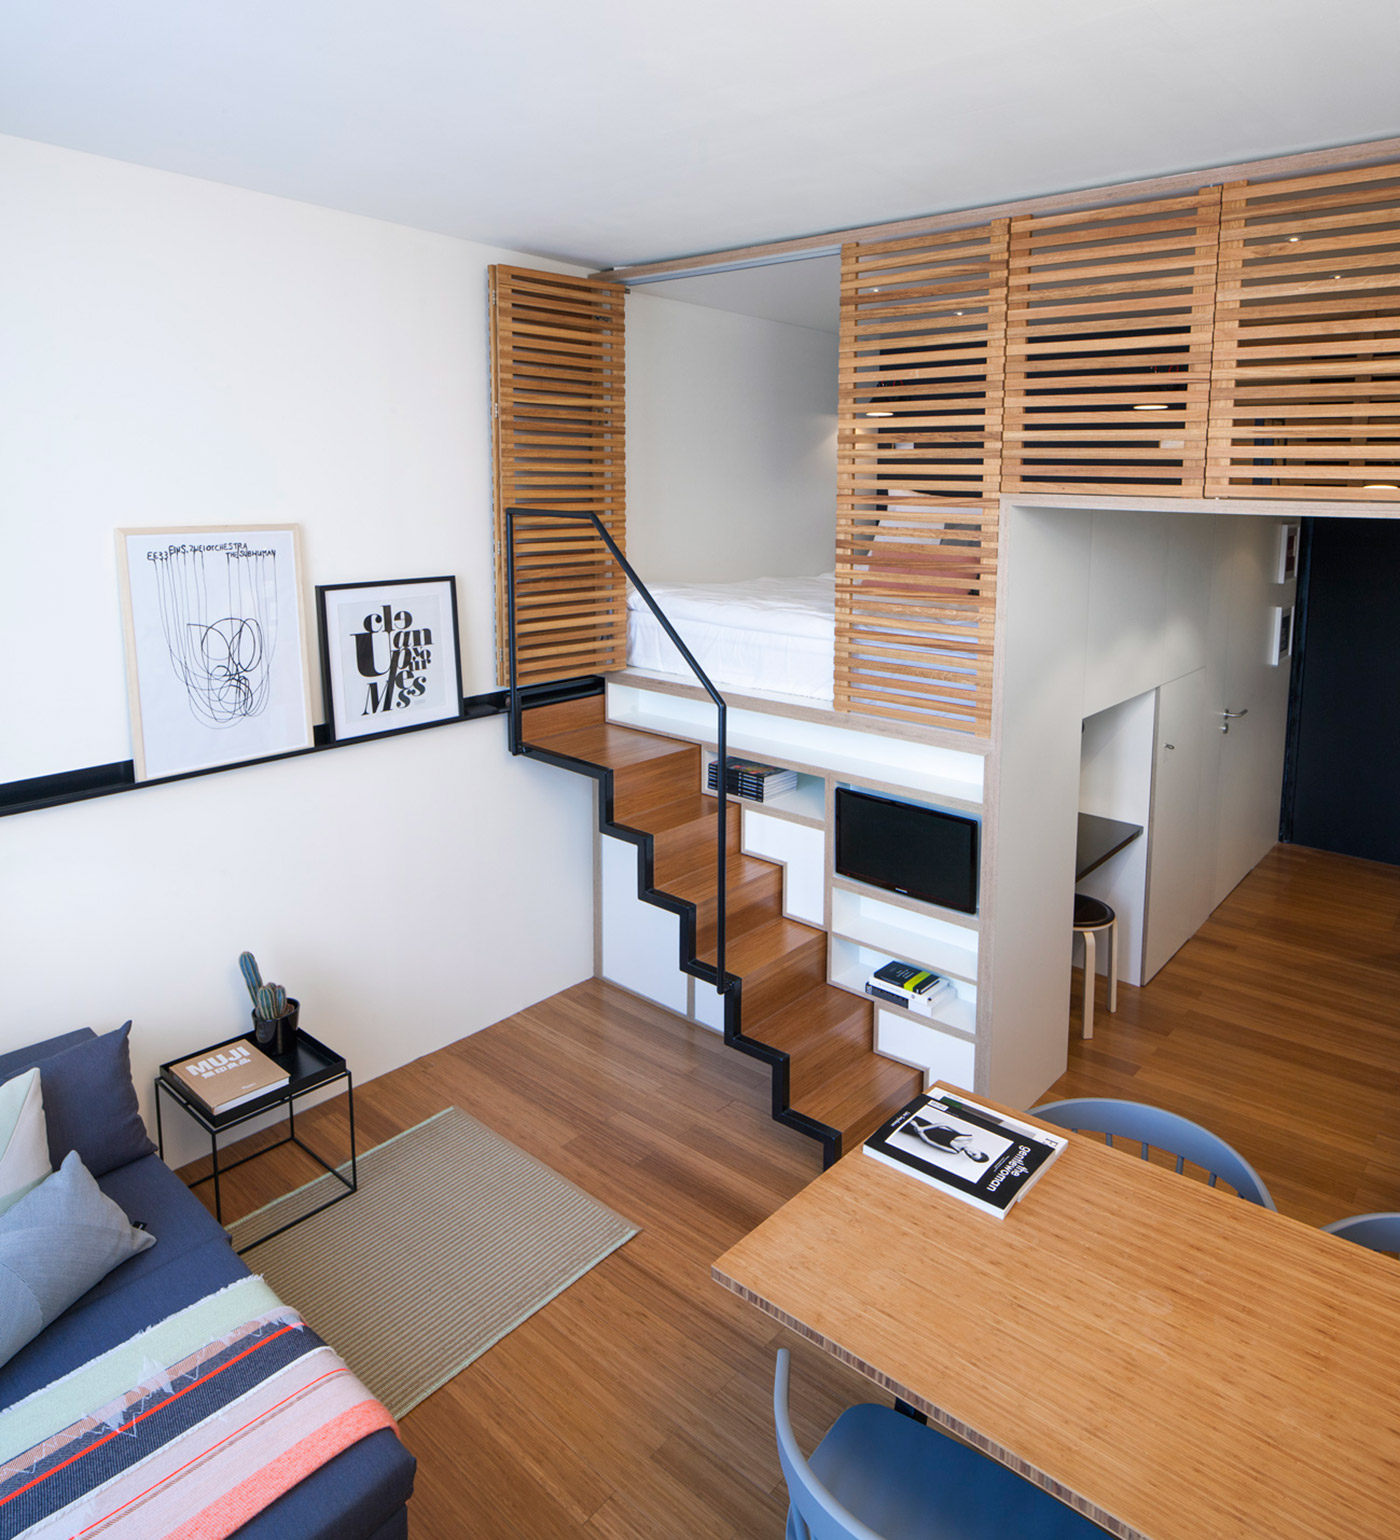 4 awesome small studio apartments with lofted beds - Pictures of studio apartments ...